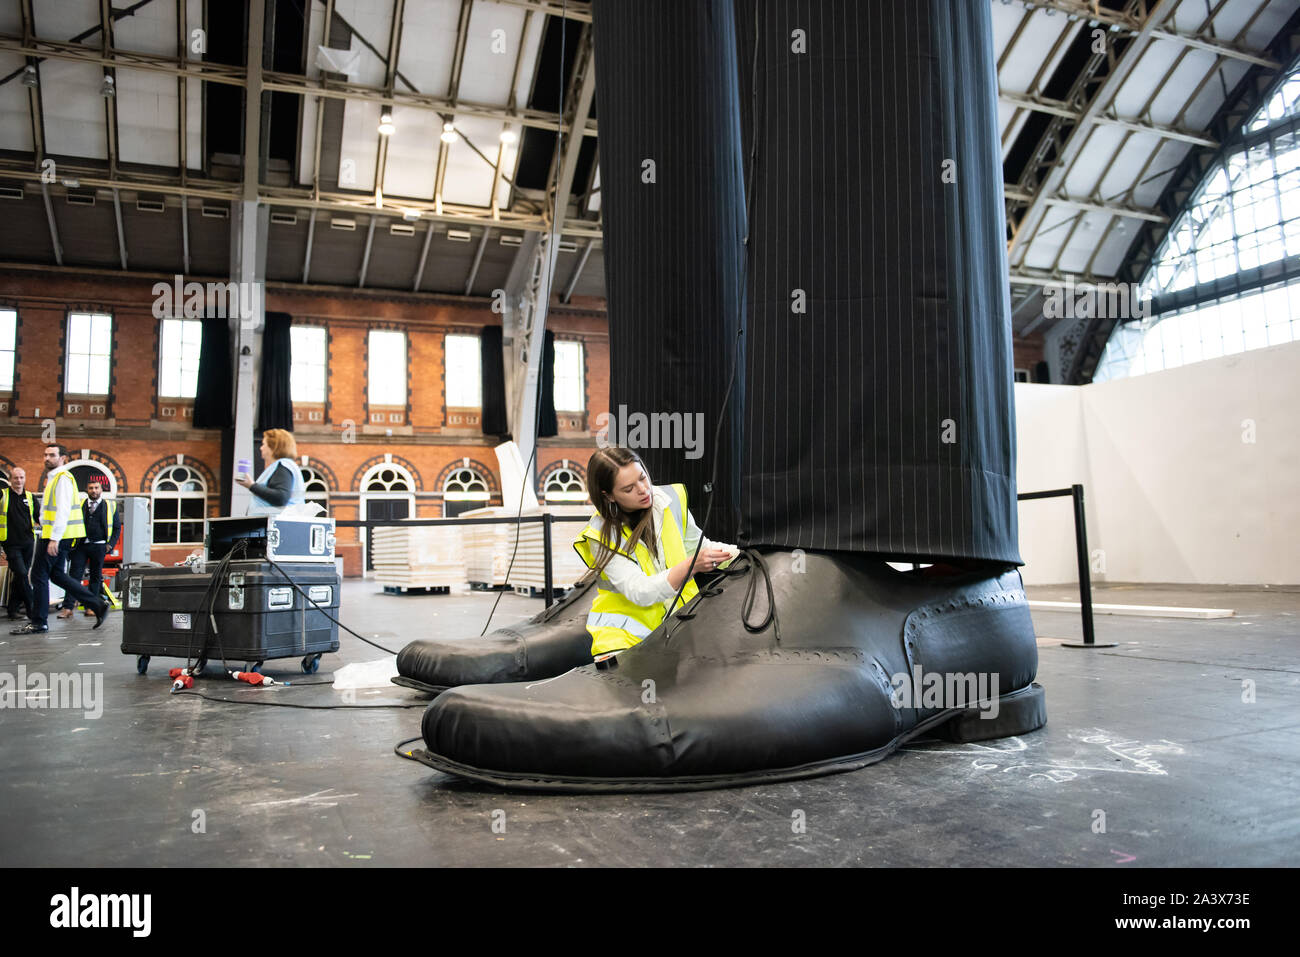 A pair of giant legs known as 'Clandestine' measuring over 10 metres in height are erected at the Aviva Investors Manchester Art Fair at Manchester Central across 11-13th October 2019. The legs are the work of 23 year old Manchester School of Art graduate Millie Sansom. The installation is made from fabric, polystyrene and faux leather and demonstrates the imbalance of power between citizens and political or corporate 'giants'. Stock Photo